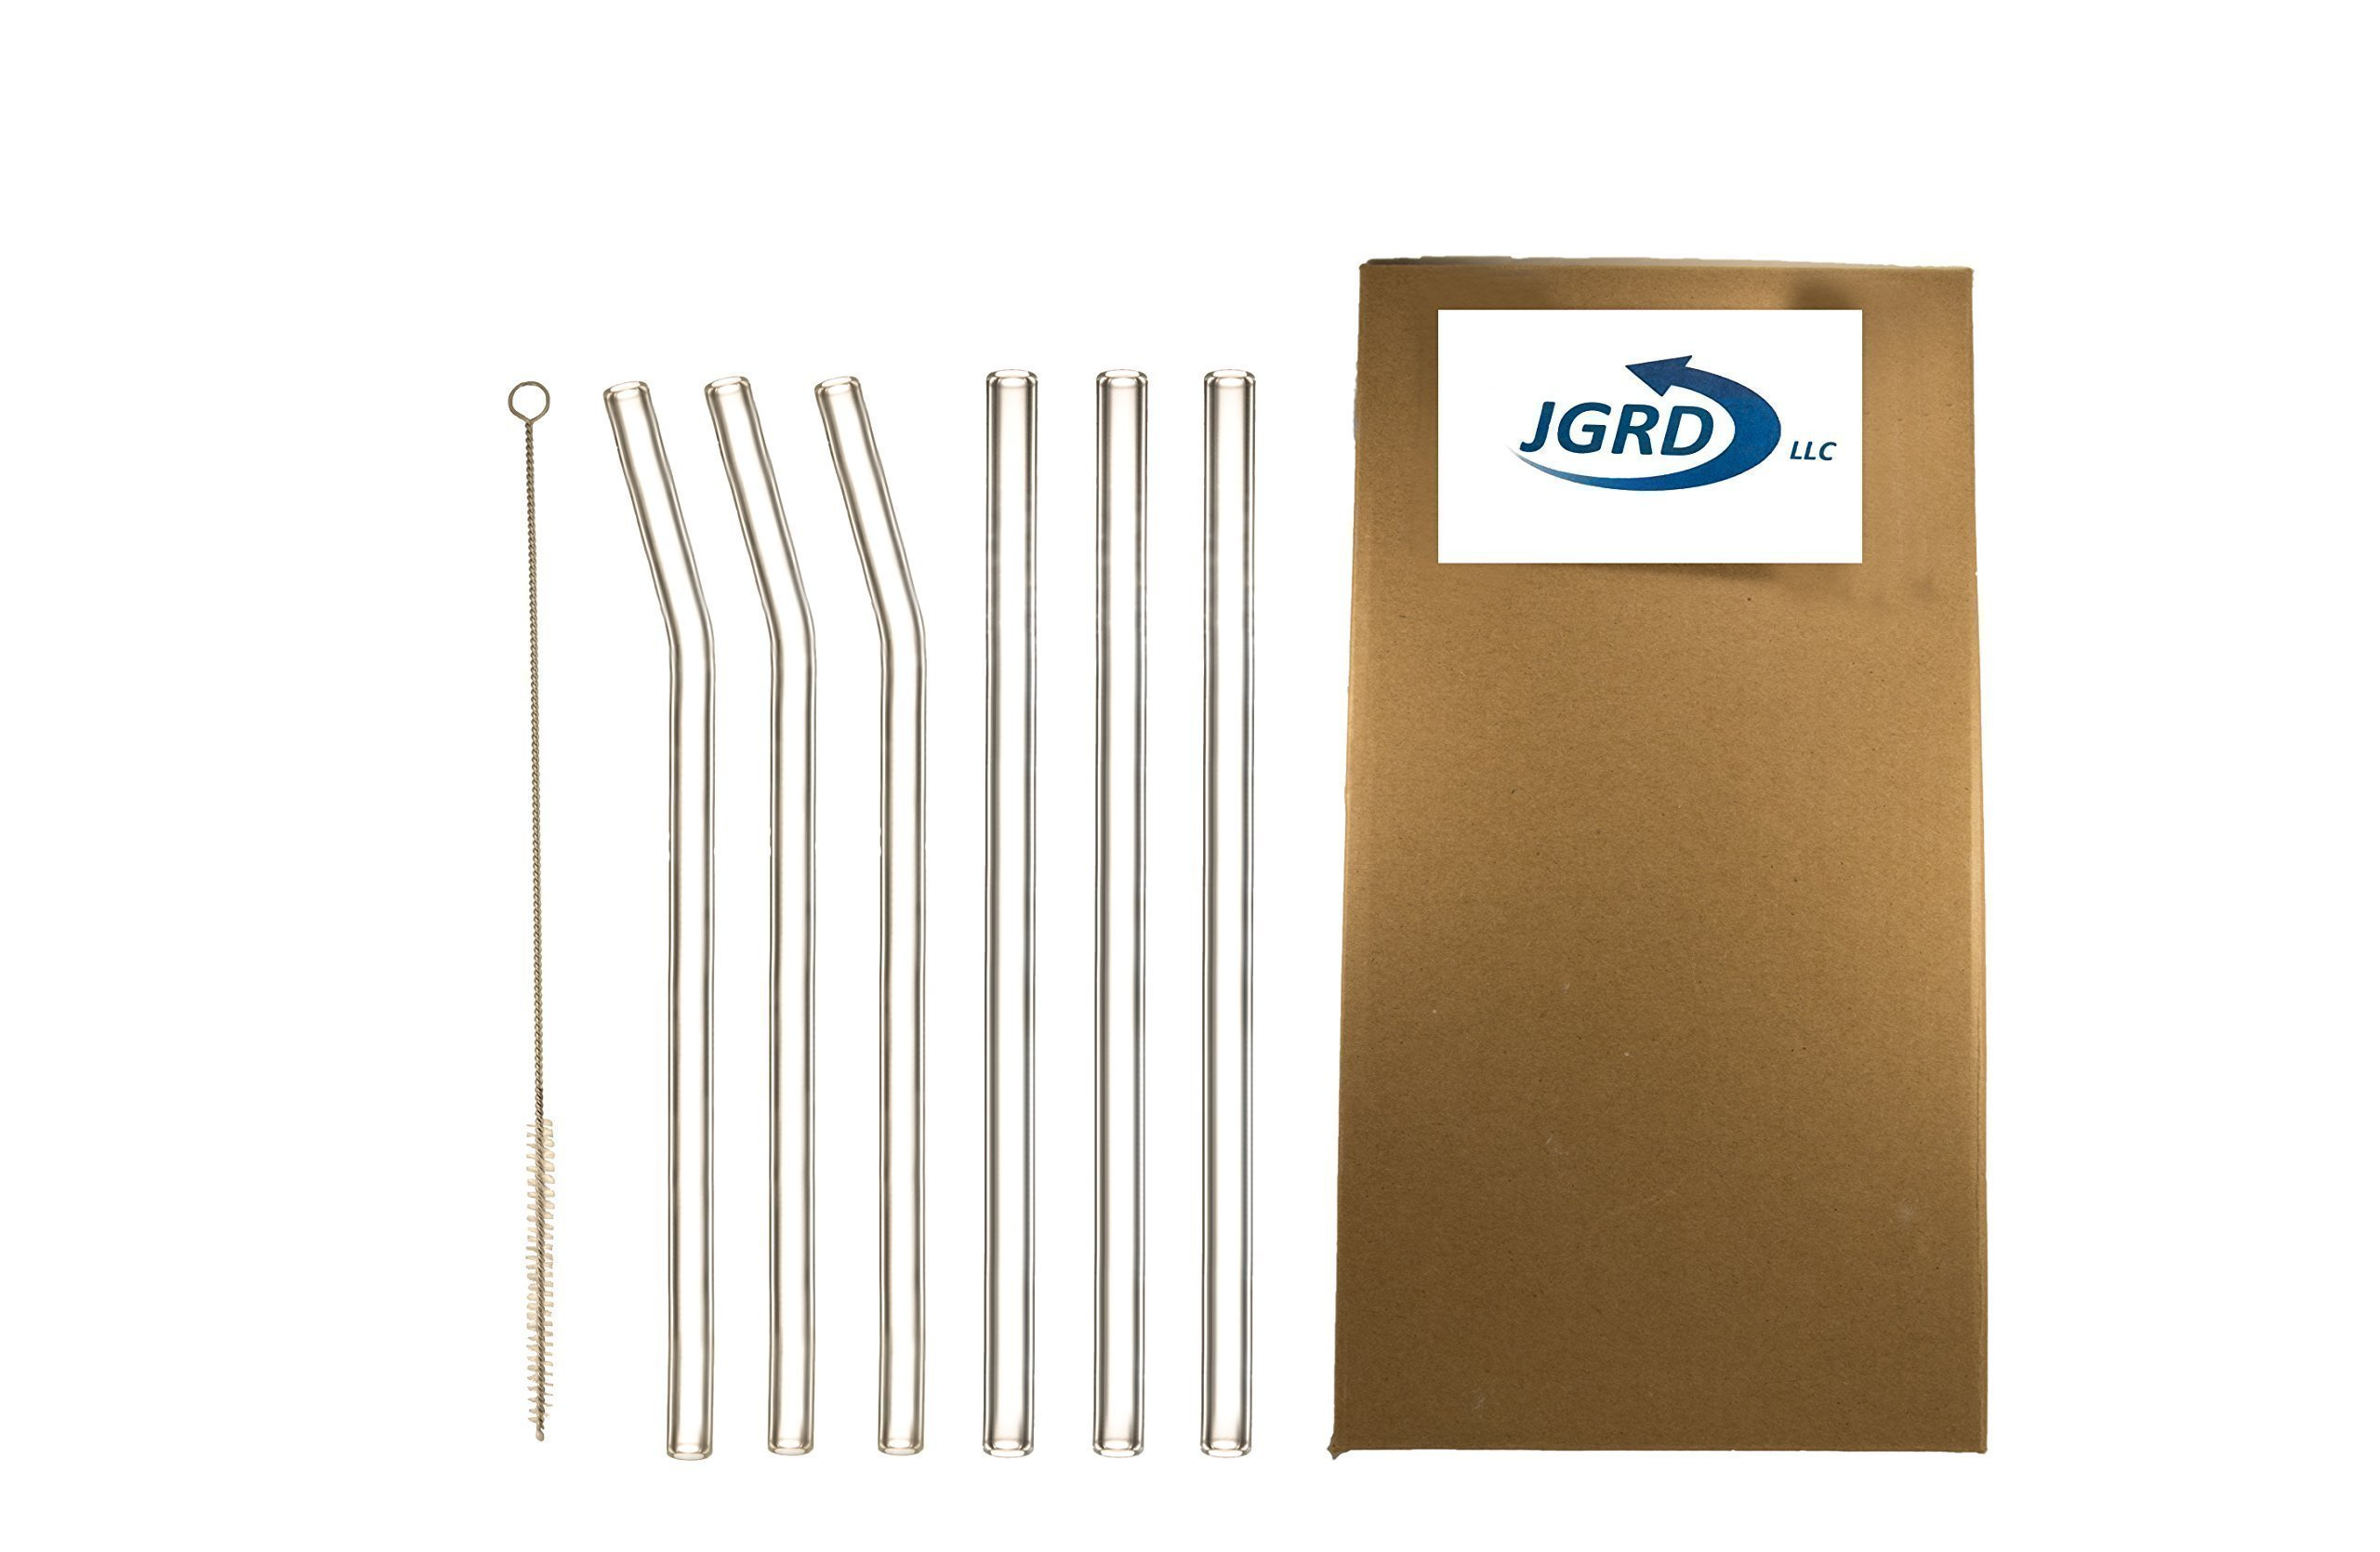 Drinking Straws Glass by JGRD, Reusable Durable, 9'' X 10mm, 3 Bent, 3 Straight, 1 Cleaning Brush, Great Durable Reusable Straw, Perfect For Smoothies, Tea, Juice, Water, Essential Oils